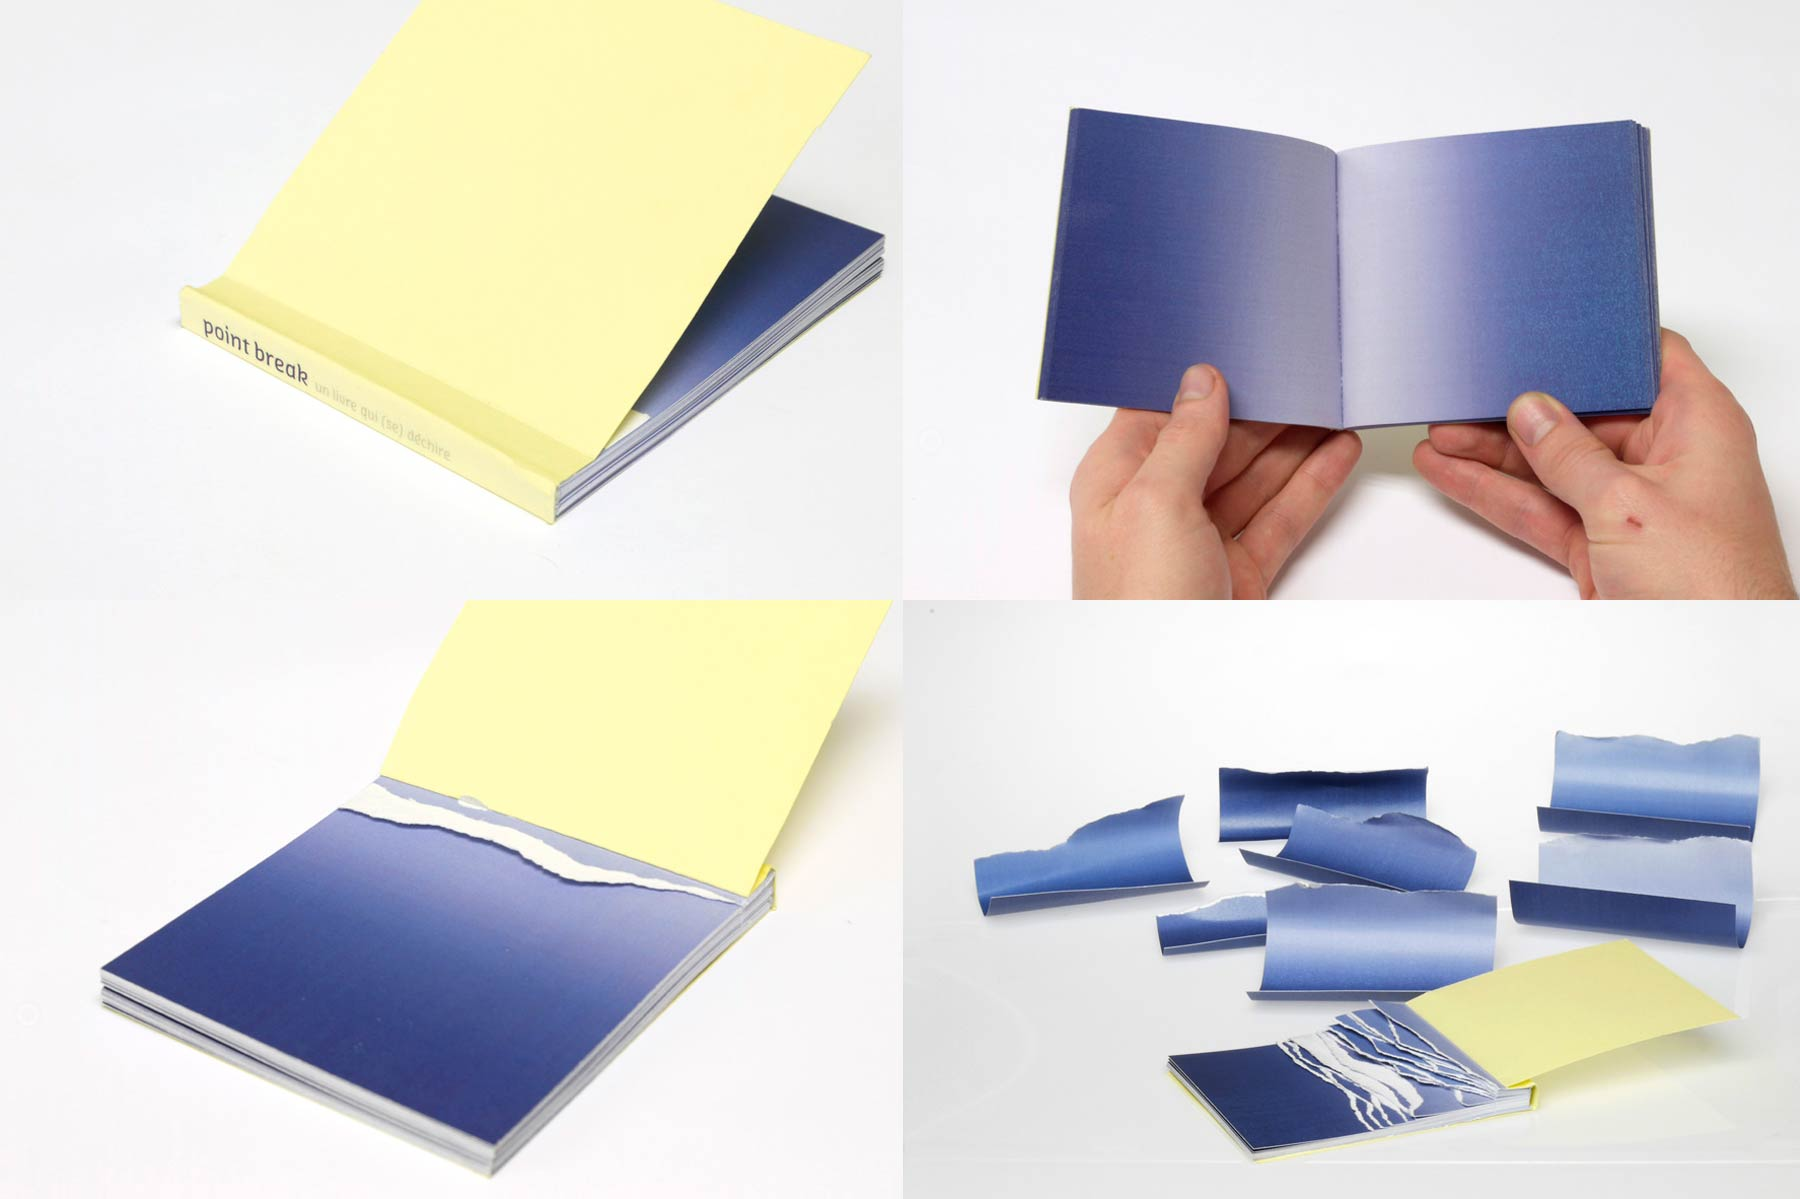 pictures of a book with blue pages. Waves can be simulated by tearing its pages away.